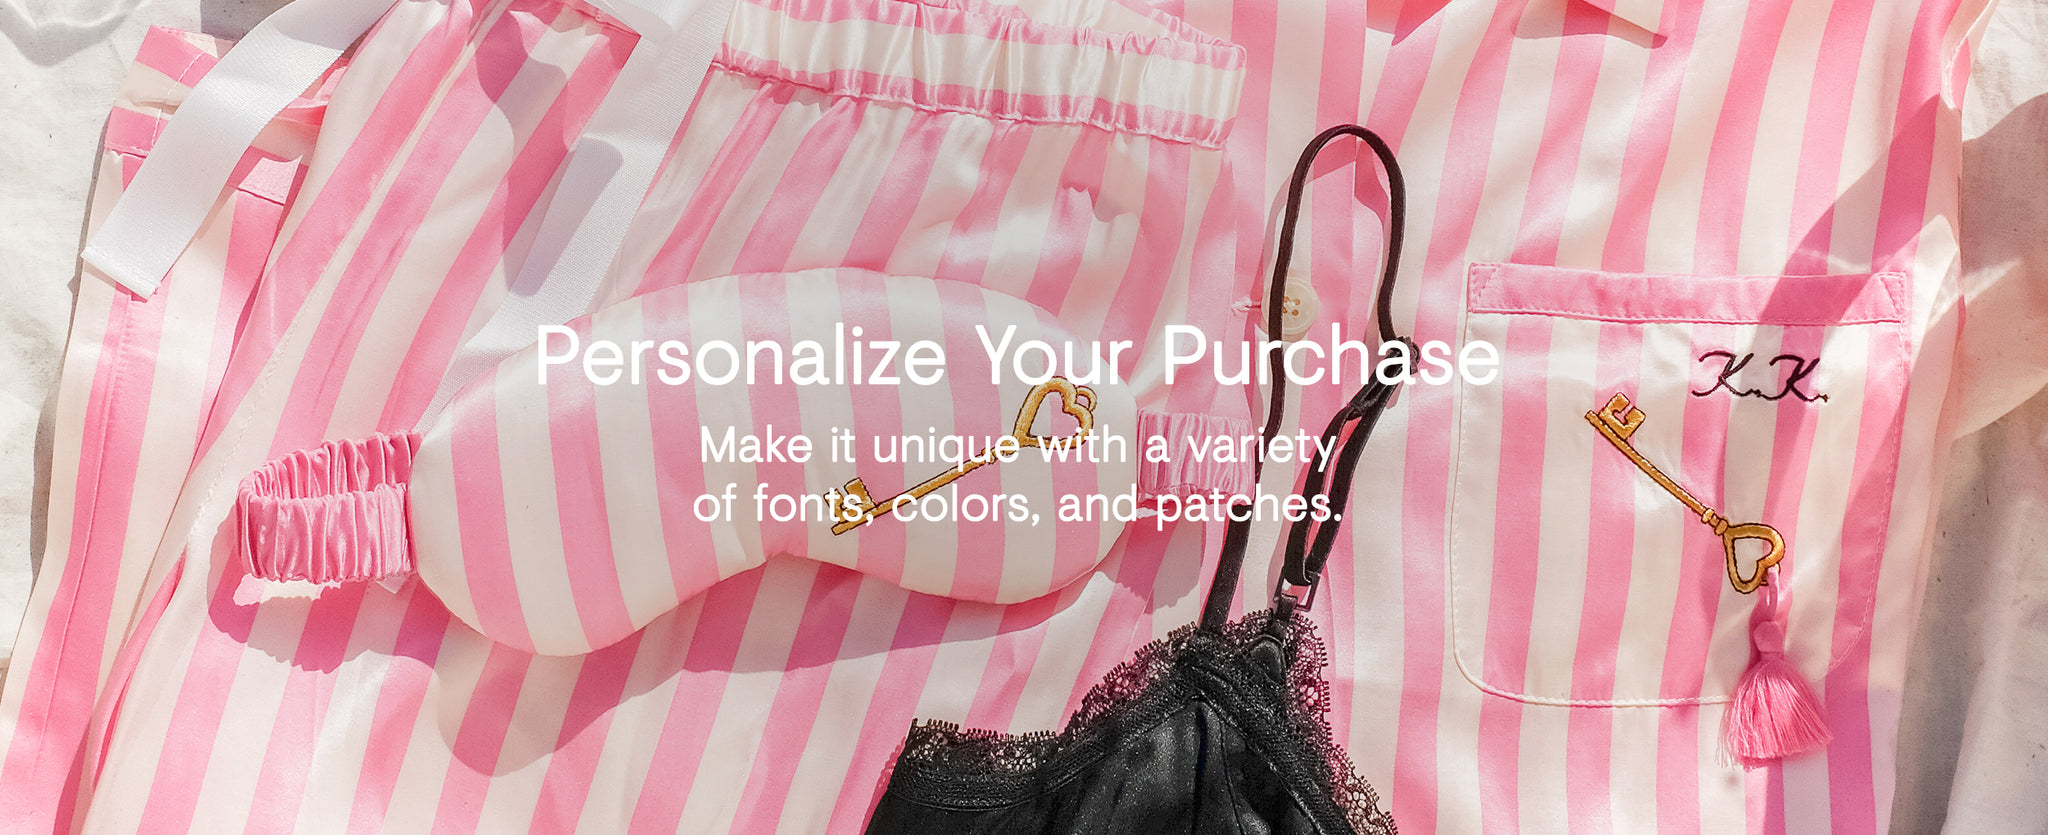 morgan lane personalize your purchase